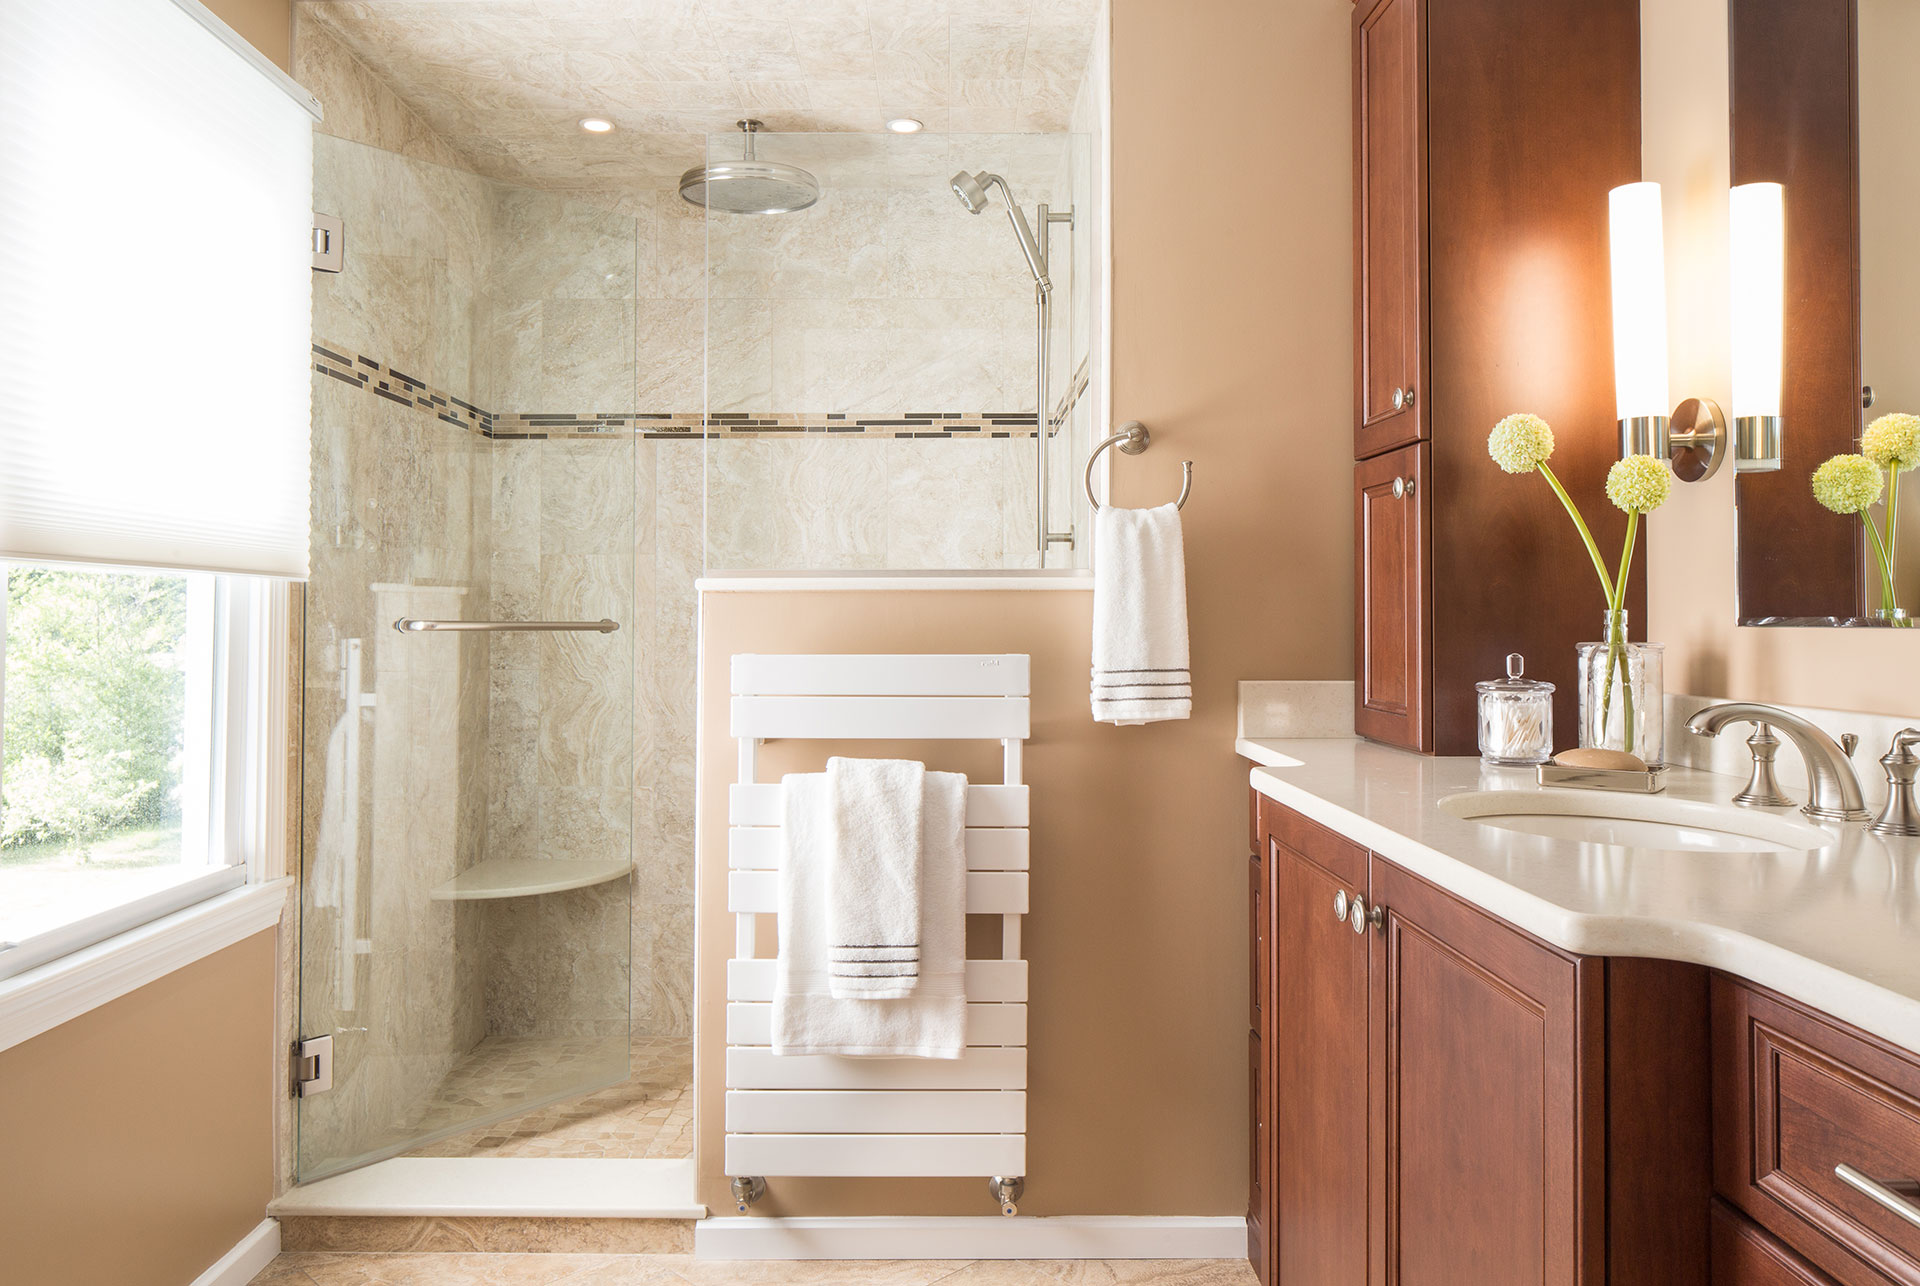 Bathroom Remodel Stores kitchen & bath gallery design showrooms remodeling ma ri ct